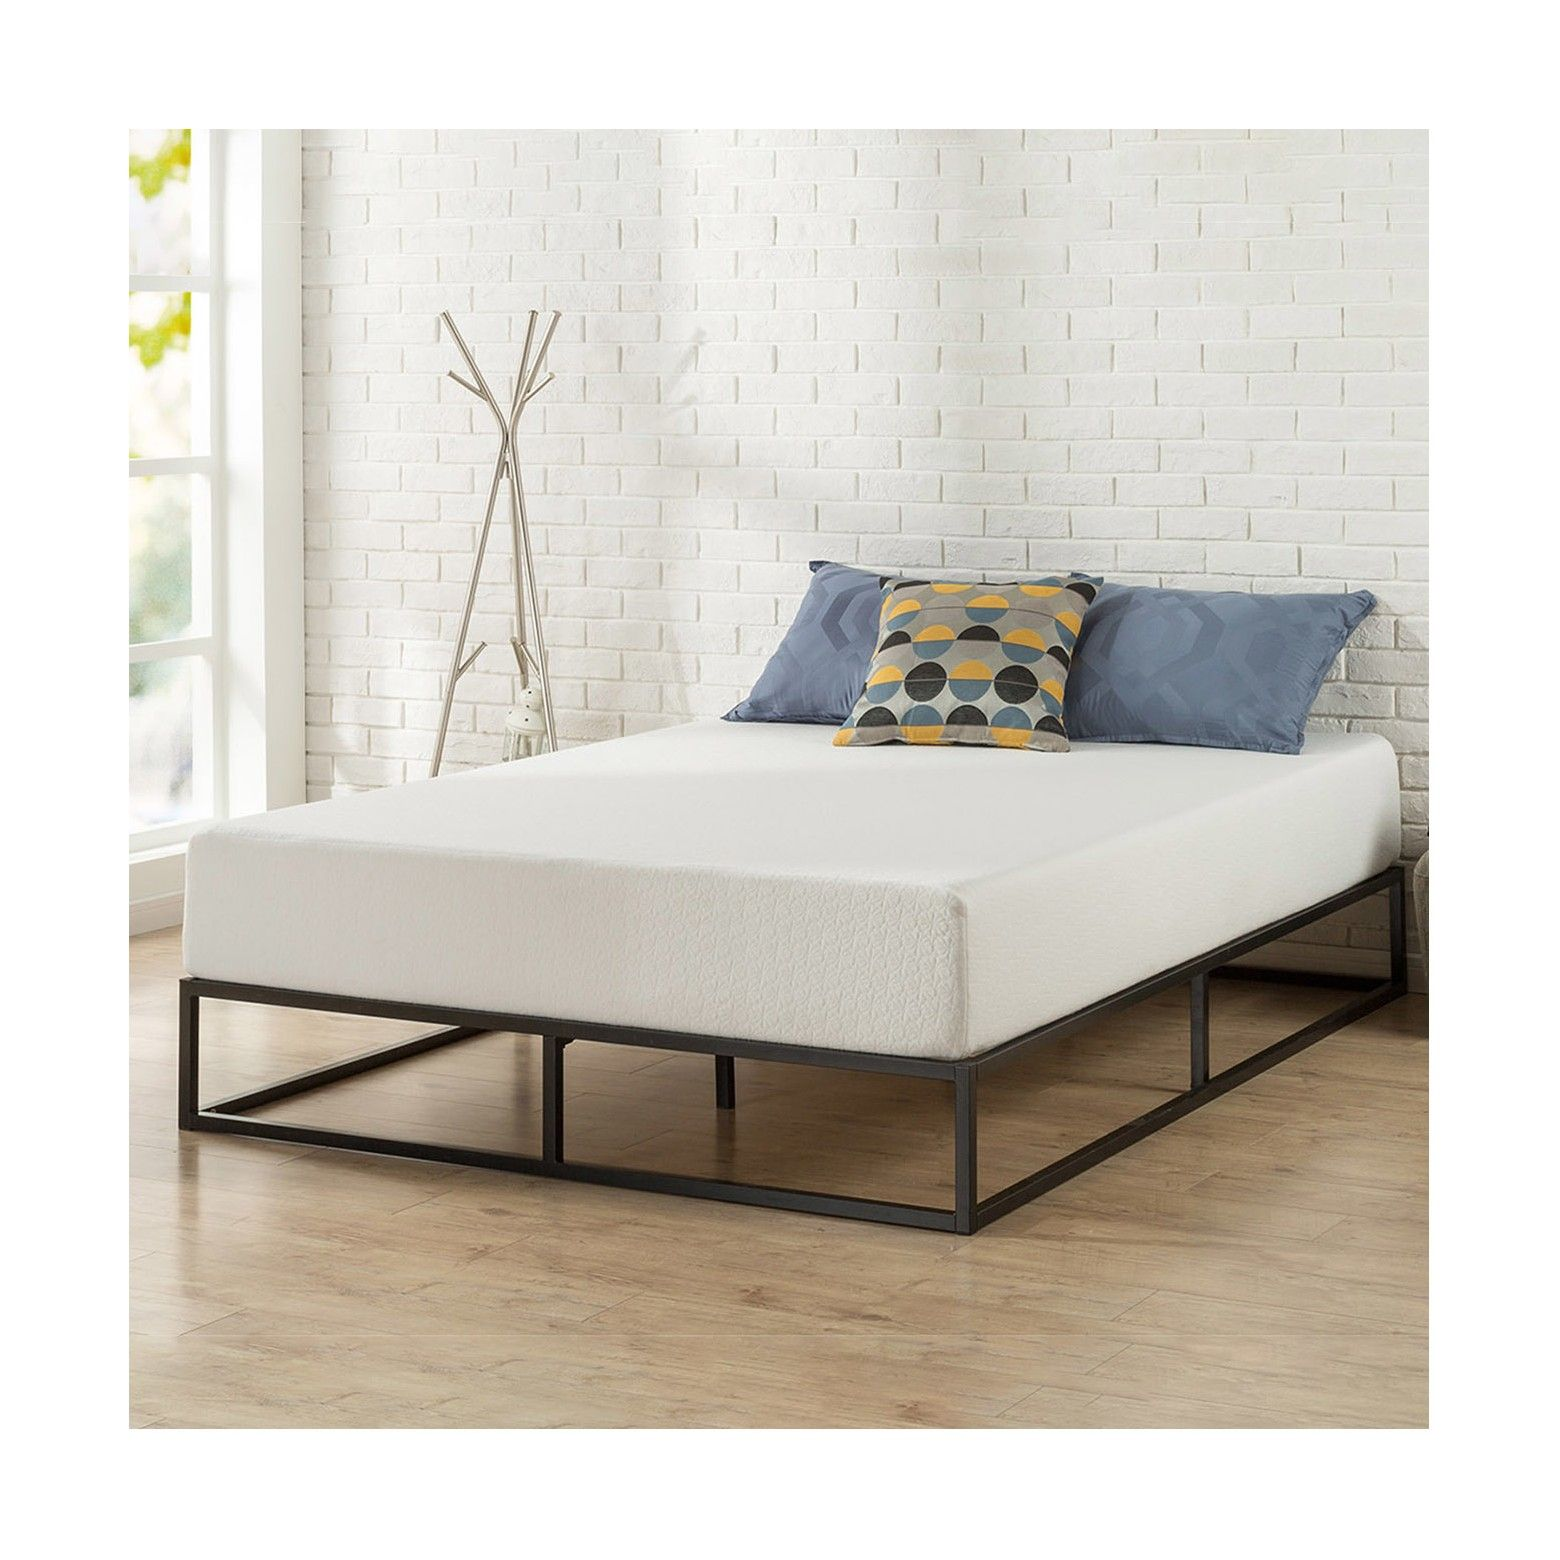 Joseph Steel Platform Bed Frame Zinus Bed Frame Mattress Bed Frame Low Profile Bed Frame